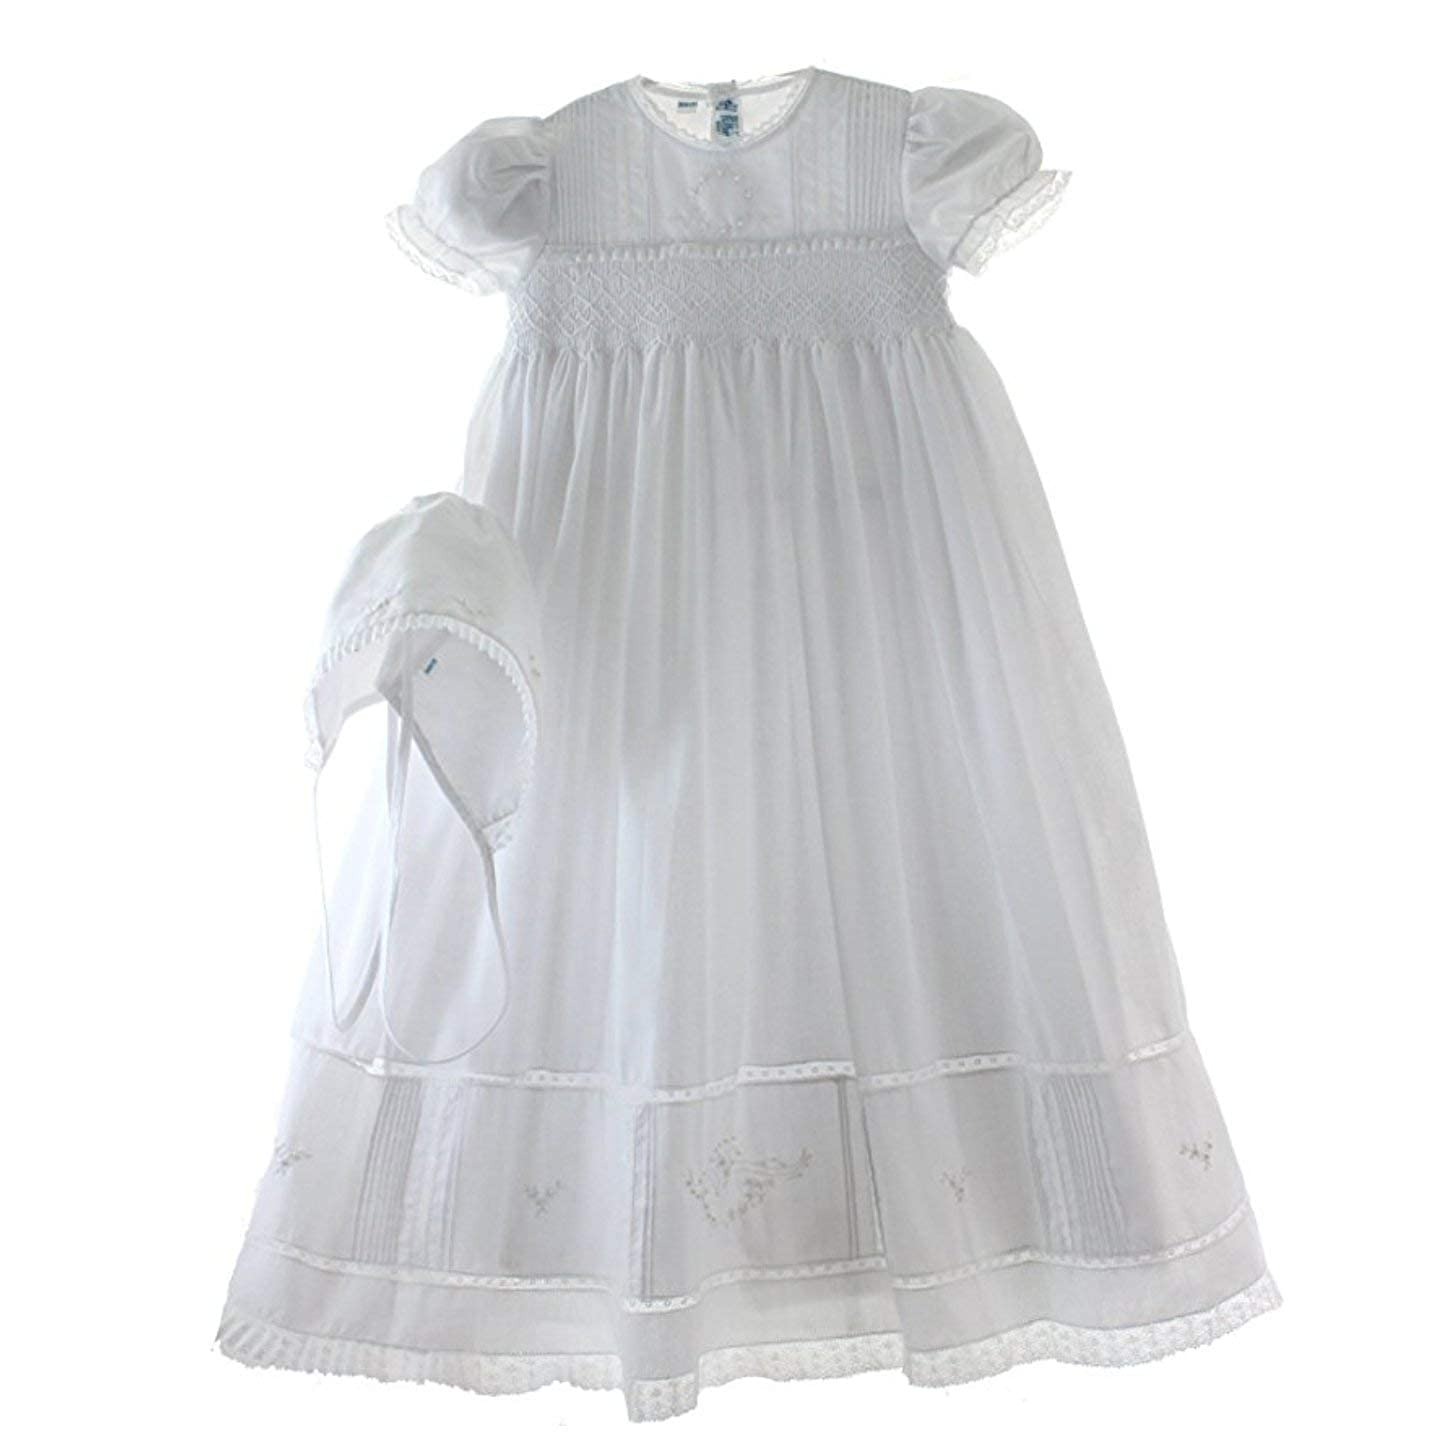 Image of Girls White Smocked Christening Baptism Gown Bonnet Set with Pearls